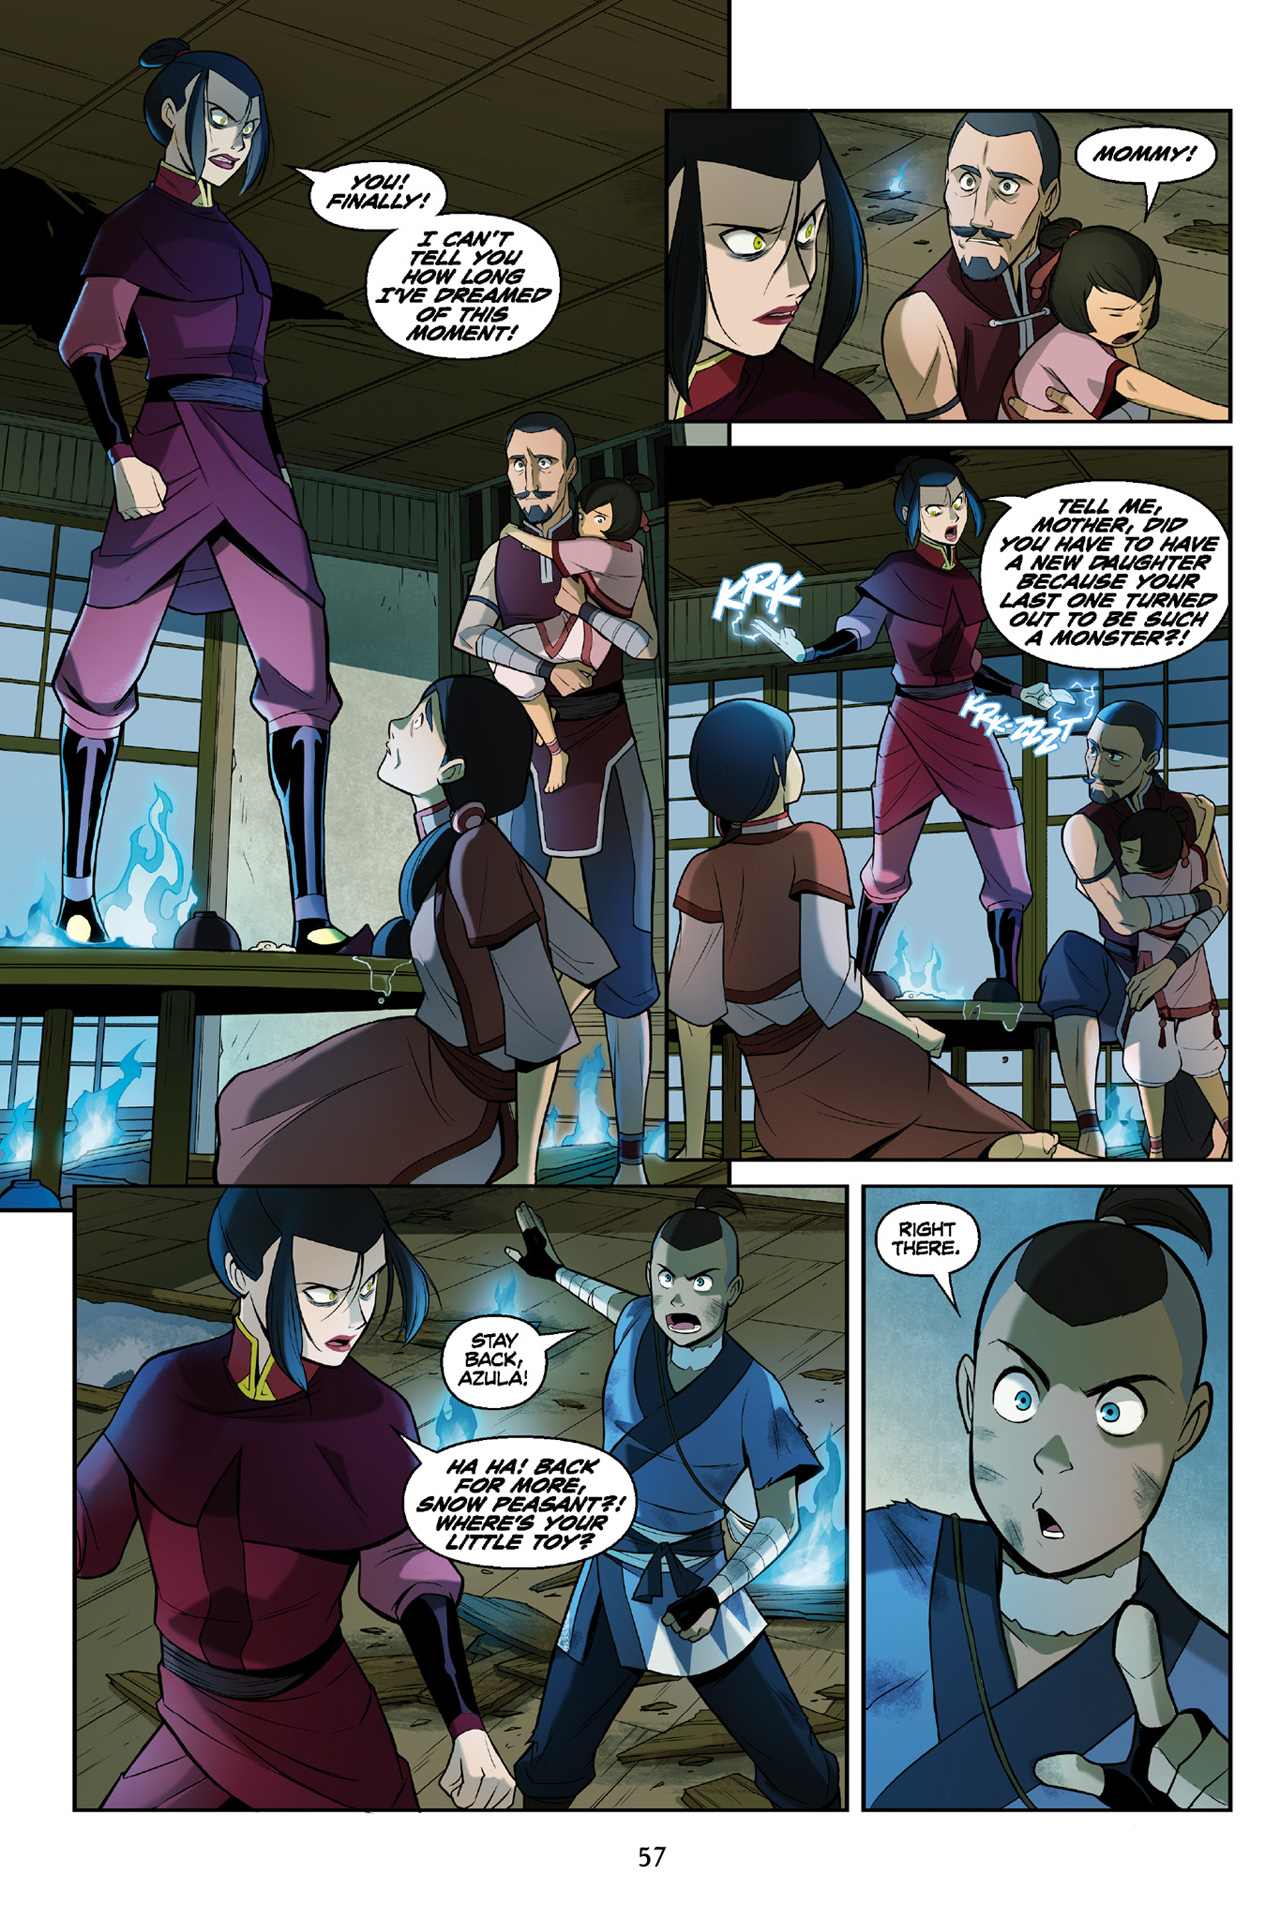 Read online Nickelodeon Avatar: The Last Airbender - The Search comic -  Issue # Part 3 - 58